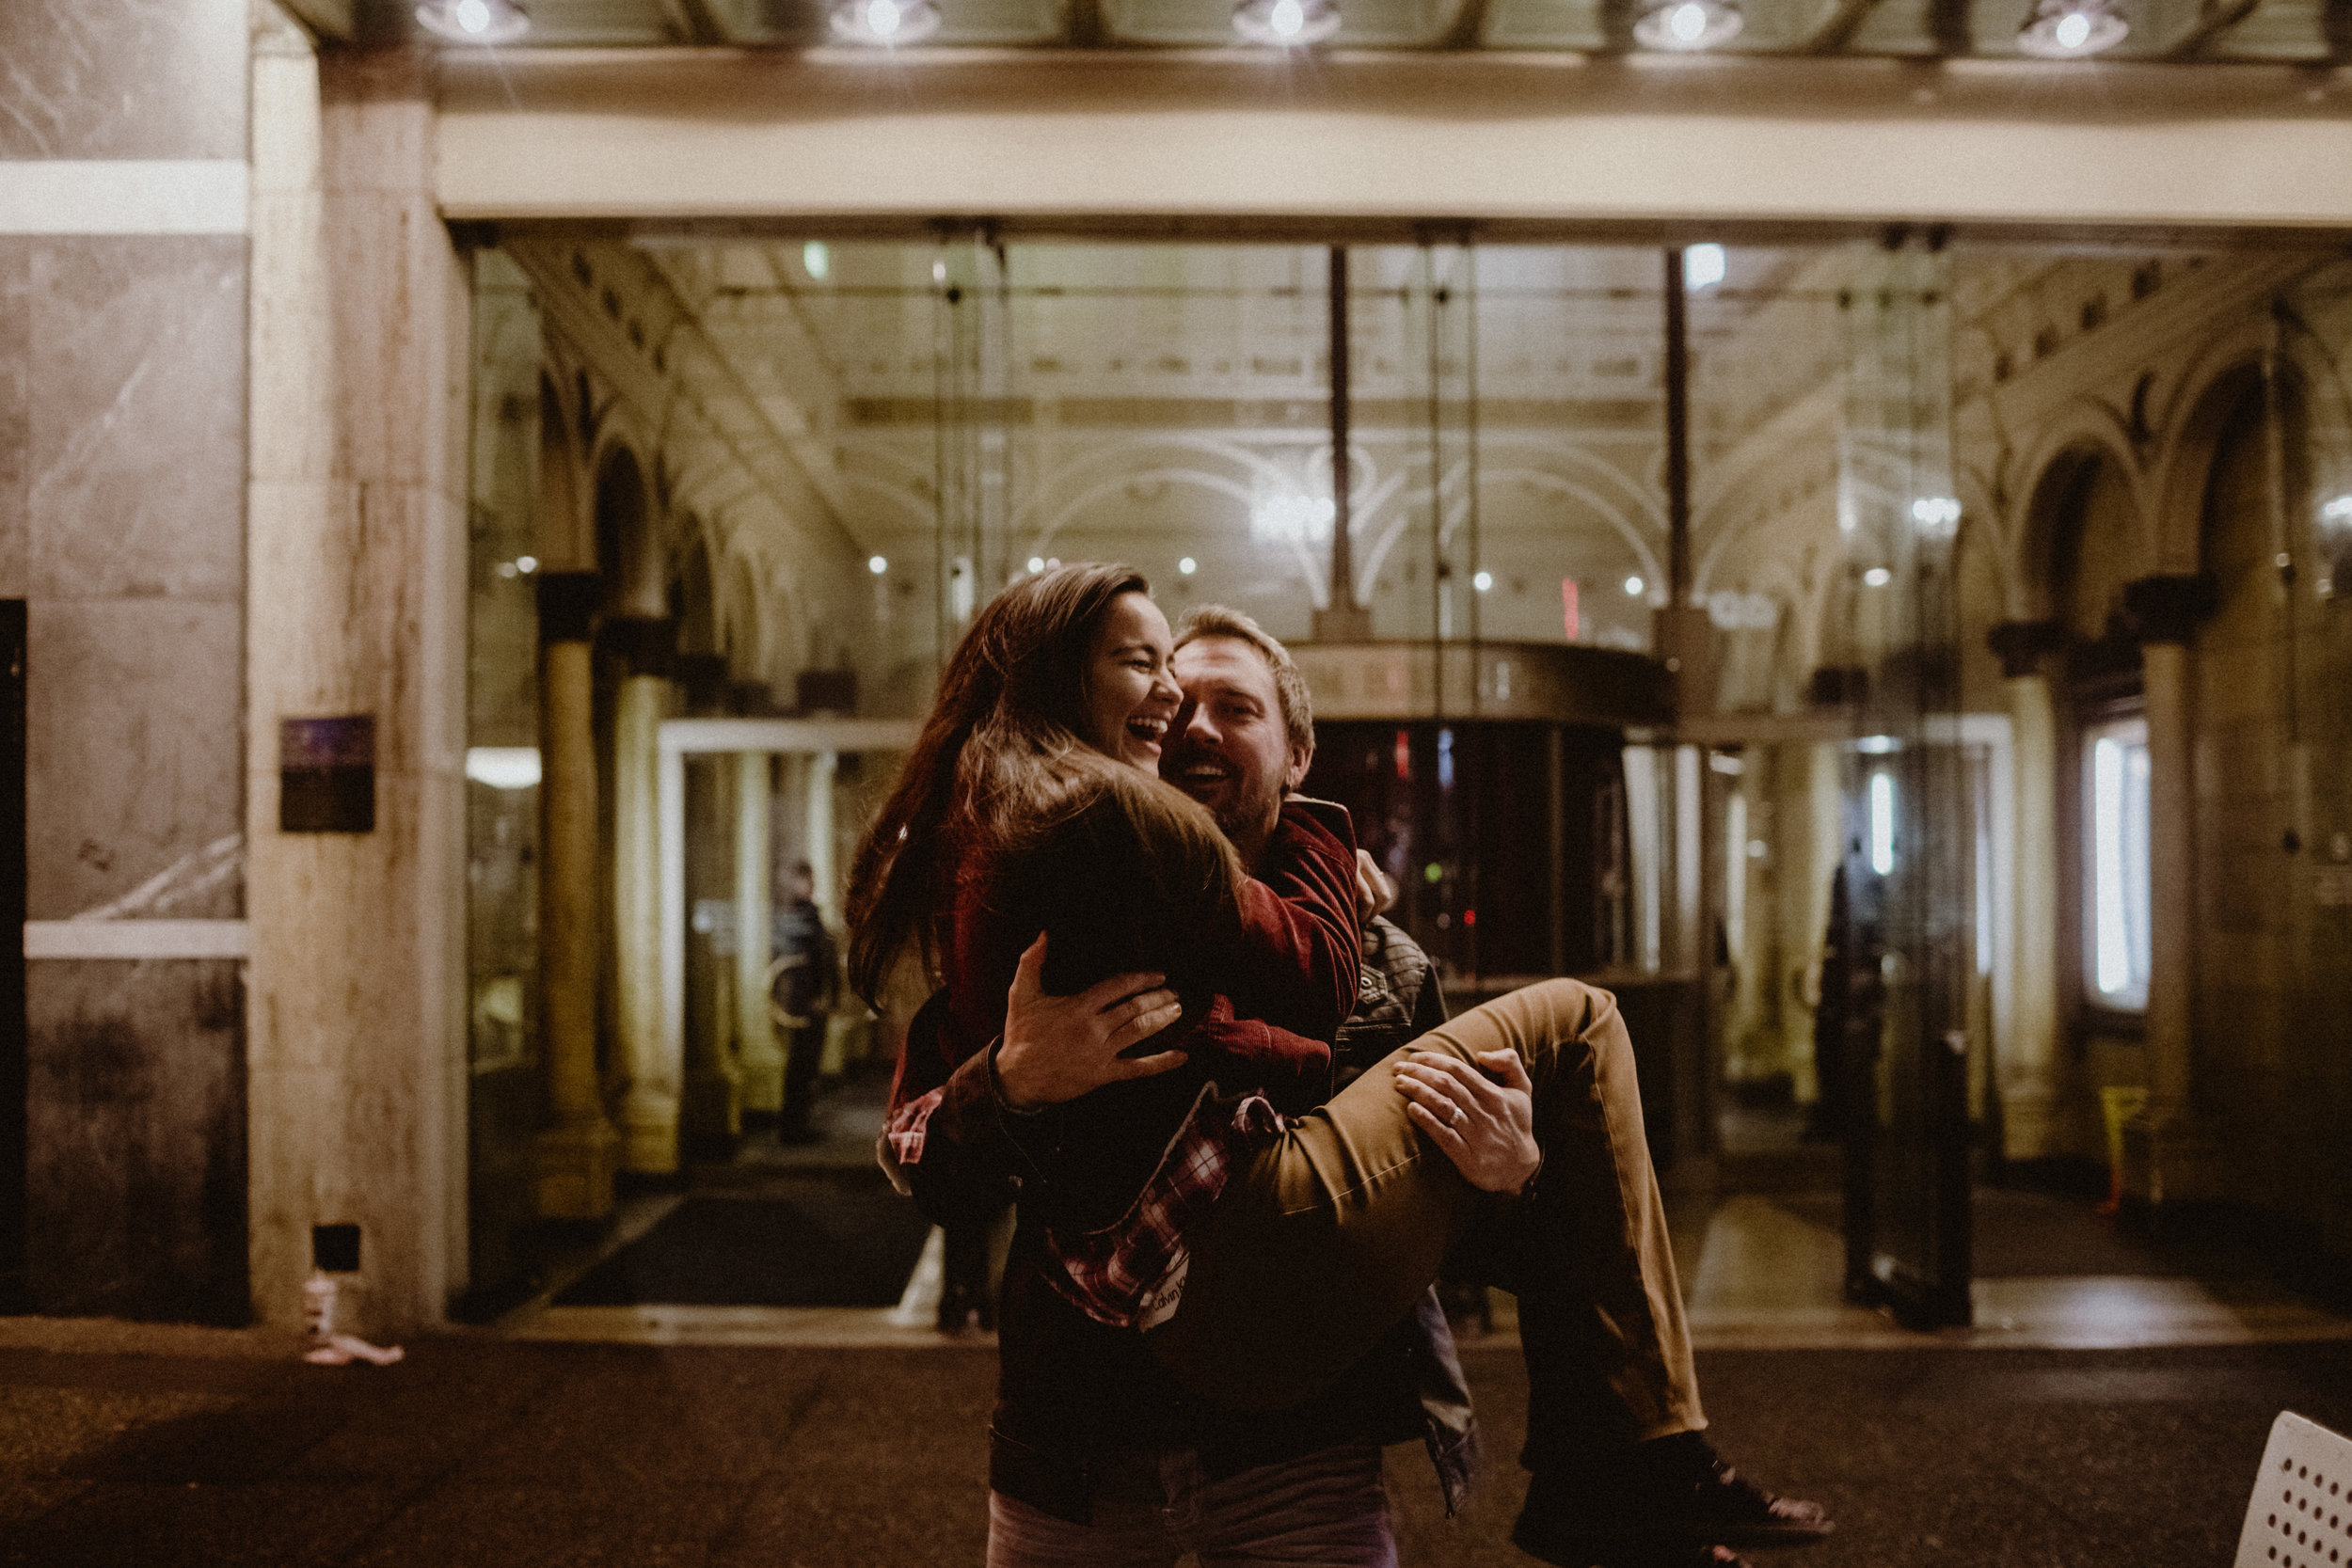 A romantic photo of an engagement session in downtown Vancouver.